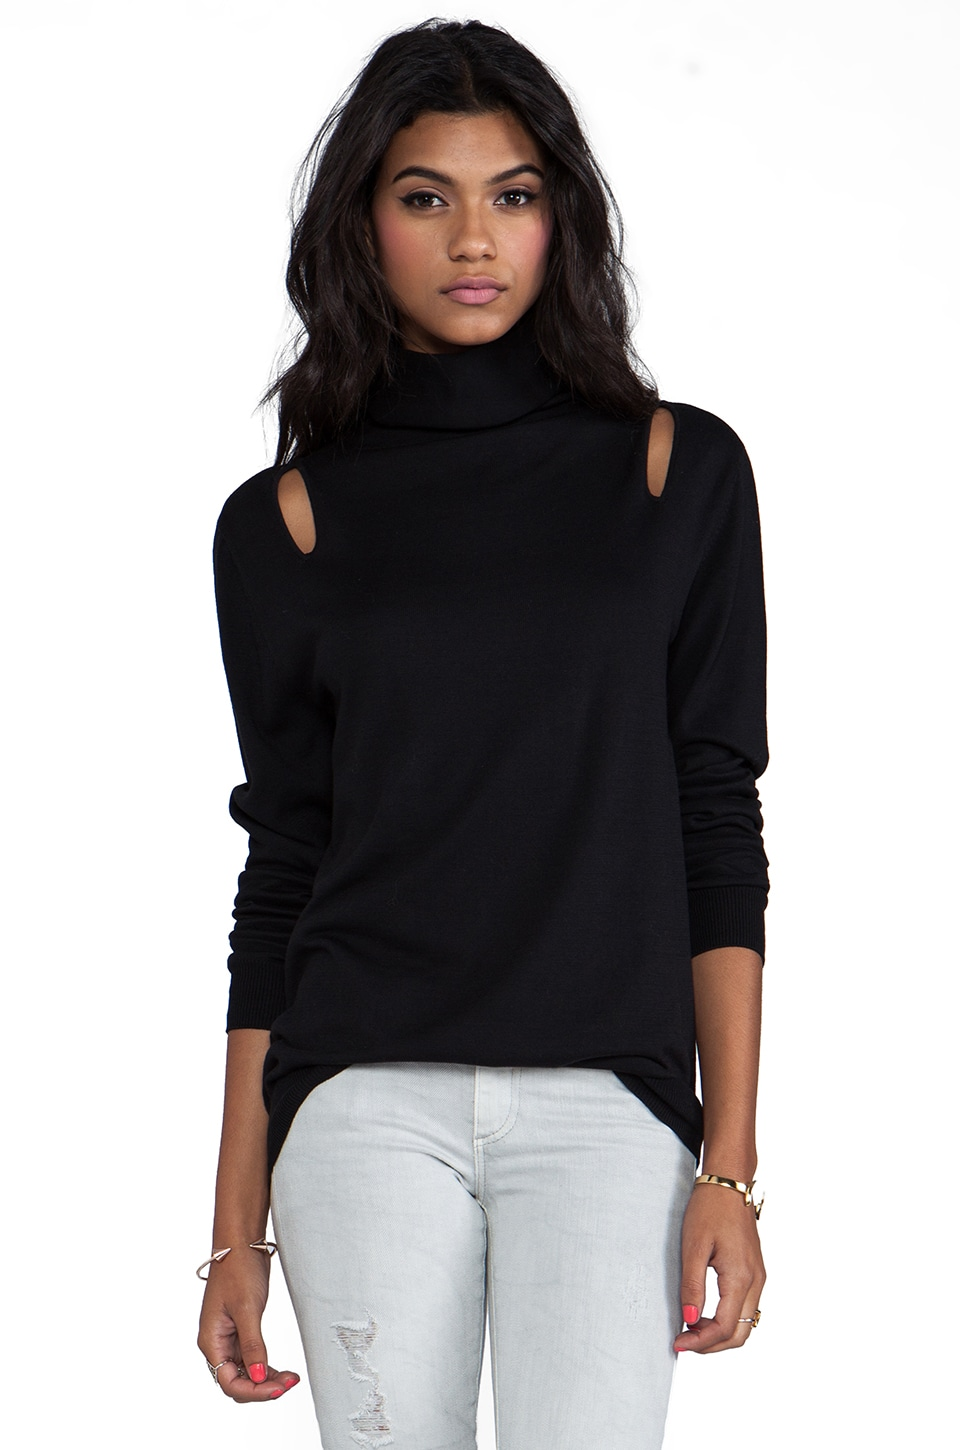 Tibi Basic Cut Out Slim Turtleneck in Black